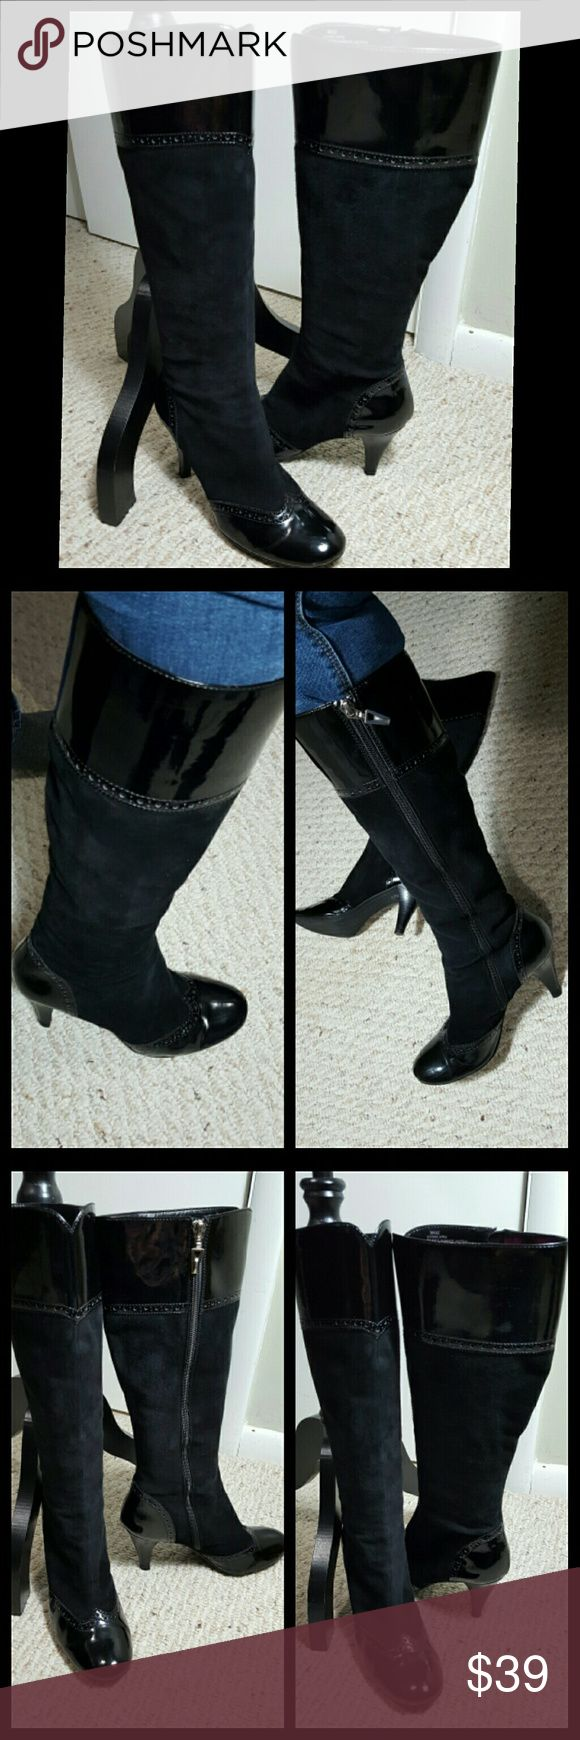 """TAHARI TALL BOOTS Maxie Leather upper  Balance Man Made Materials  8M Few scraps n wear on paitent, but nothing substantial. Price reflects this  Other than that, boots are in great condition/ Clean  3.5"""" heels  17 3/4"""" Shaft  15 1/4"""" calf circumference  True to size  No trades Please Tahari Shoes Heeled Boots"""